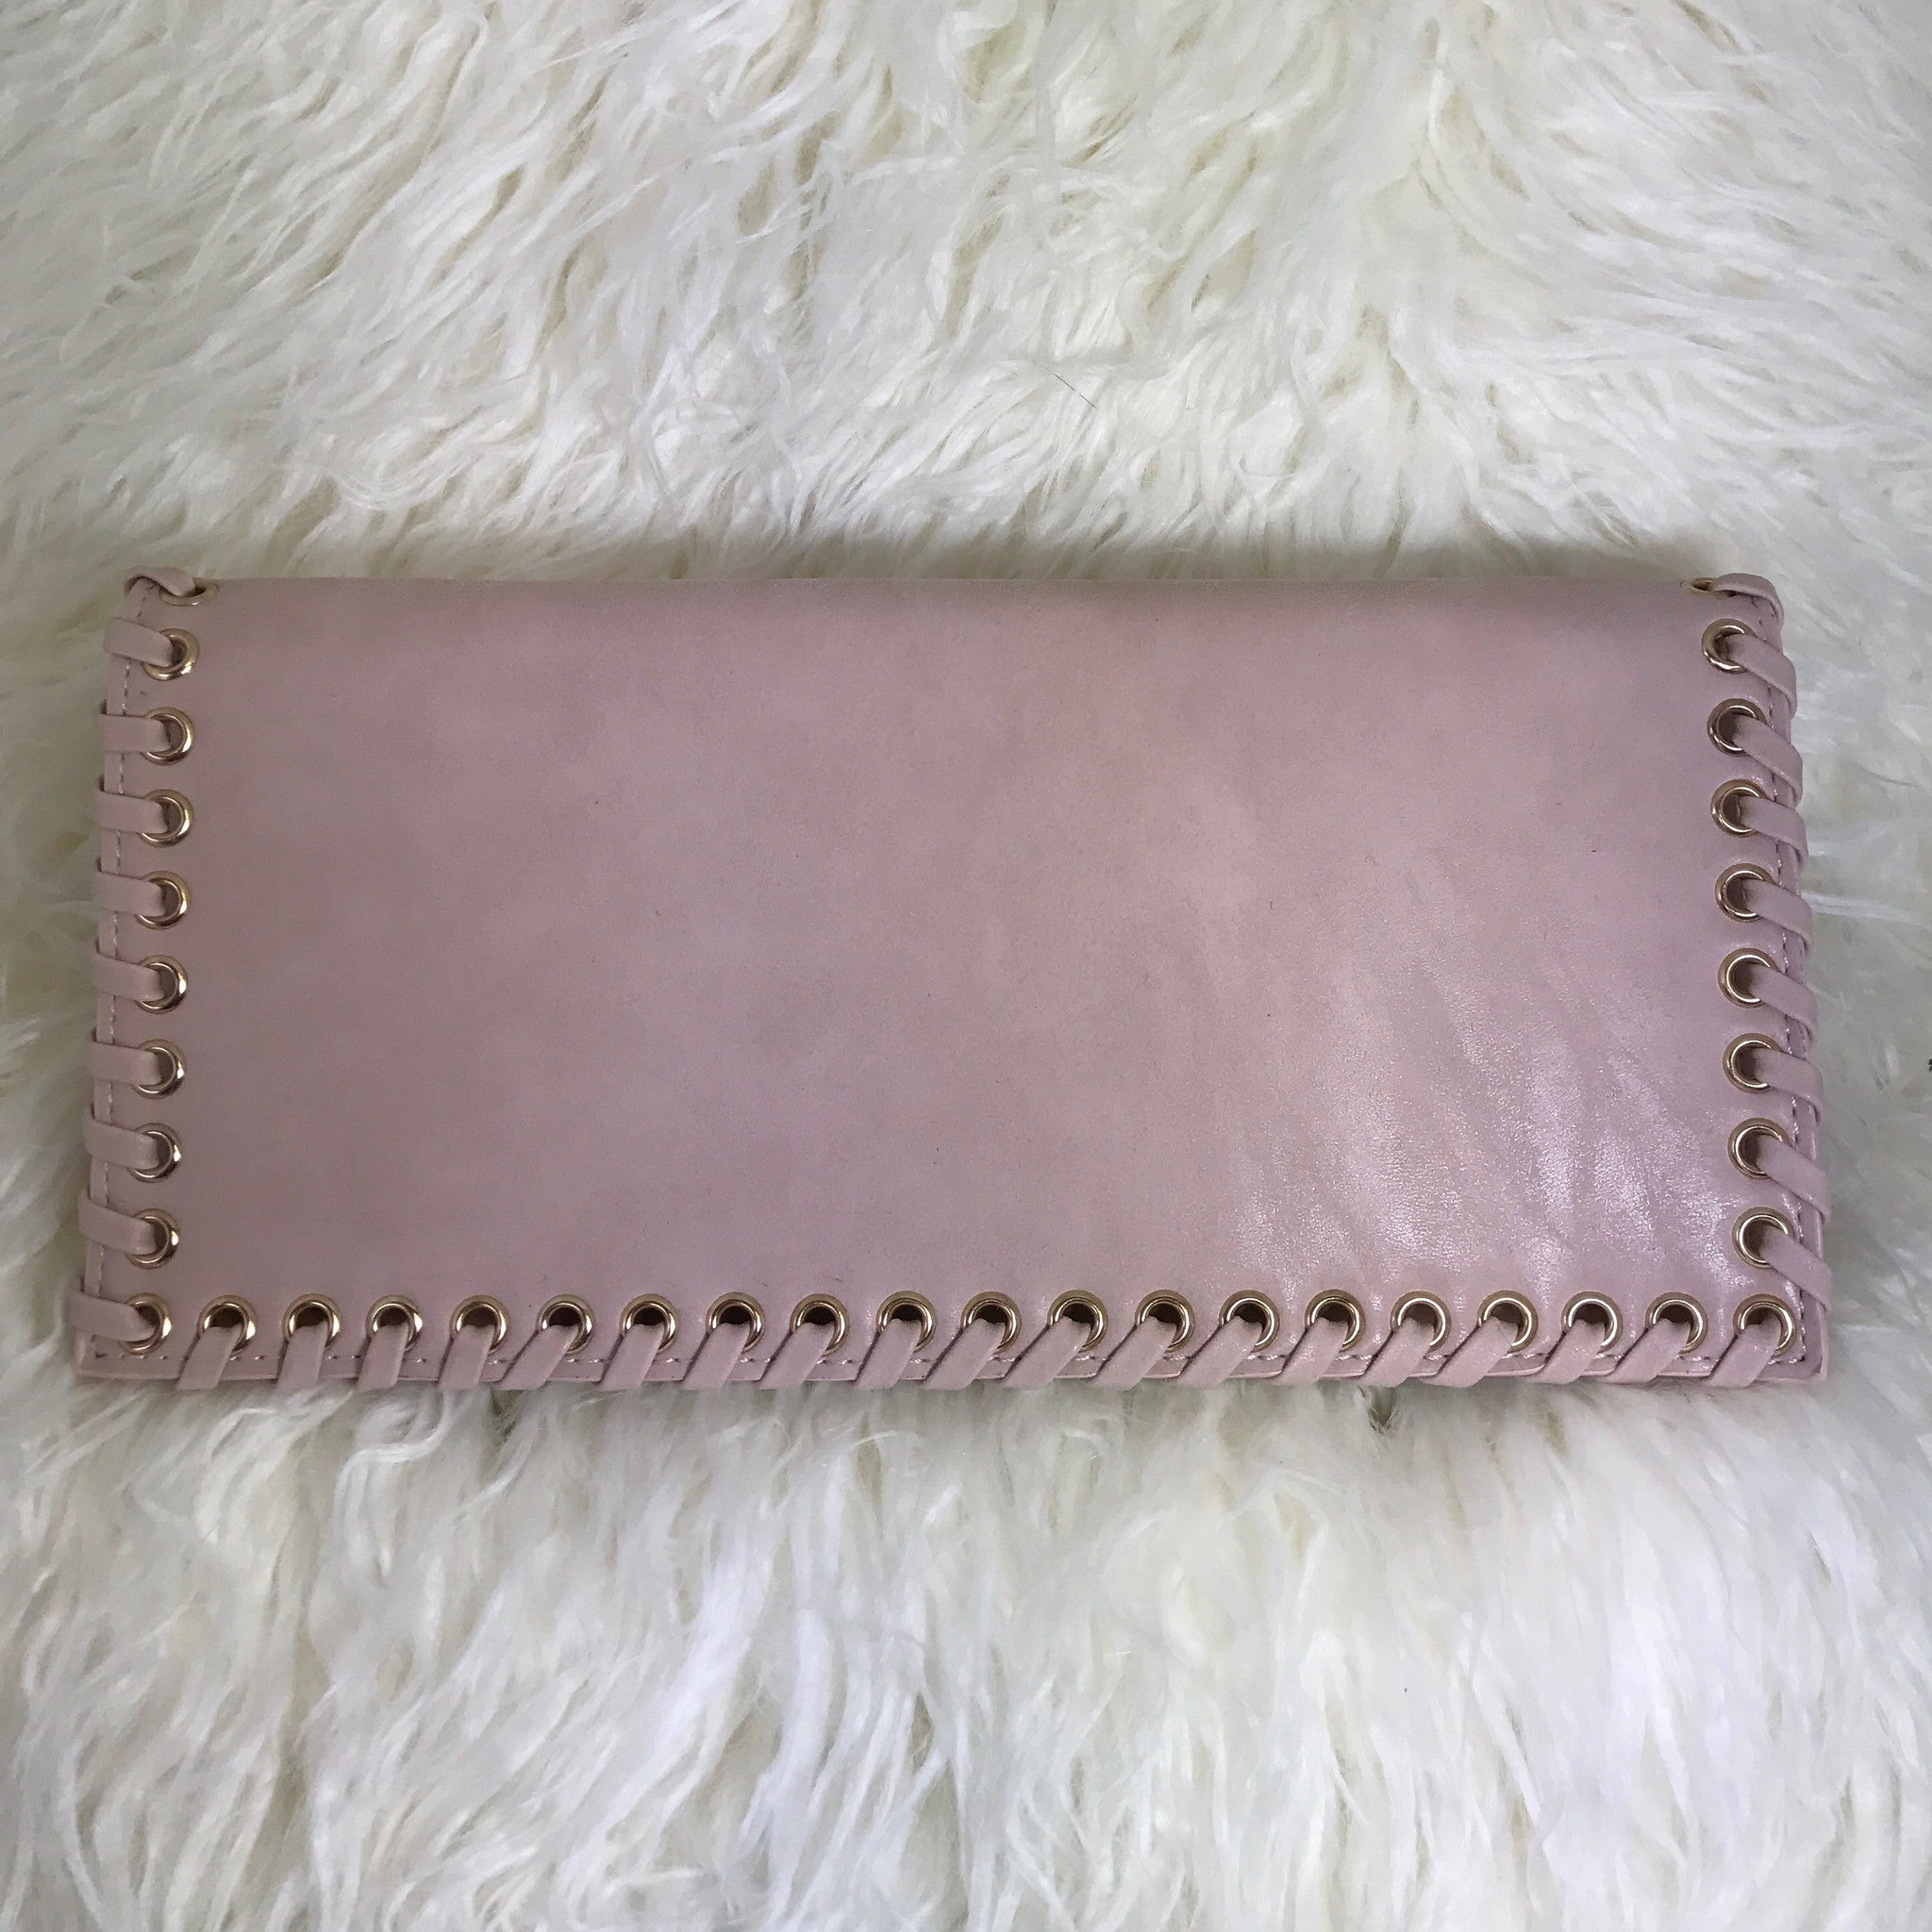 BLUSH EAST WEST CLUTCH - Glam Envy